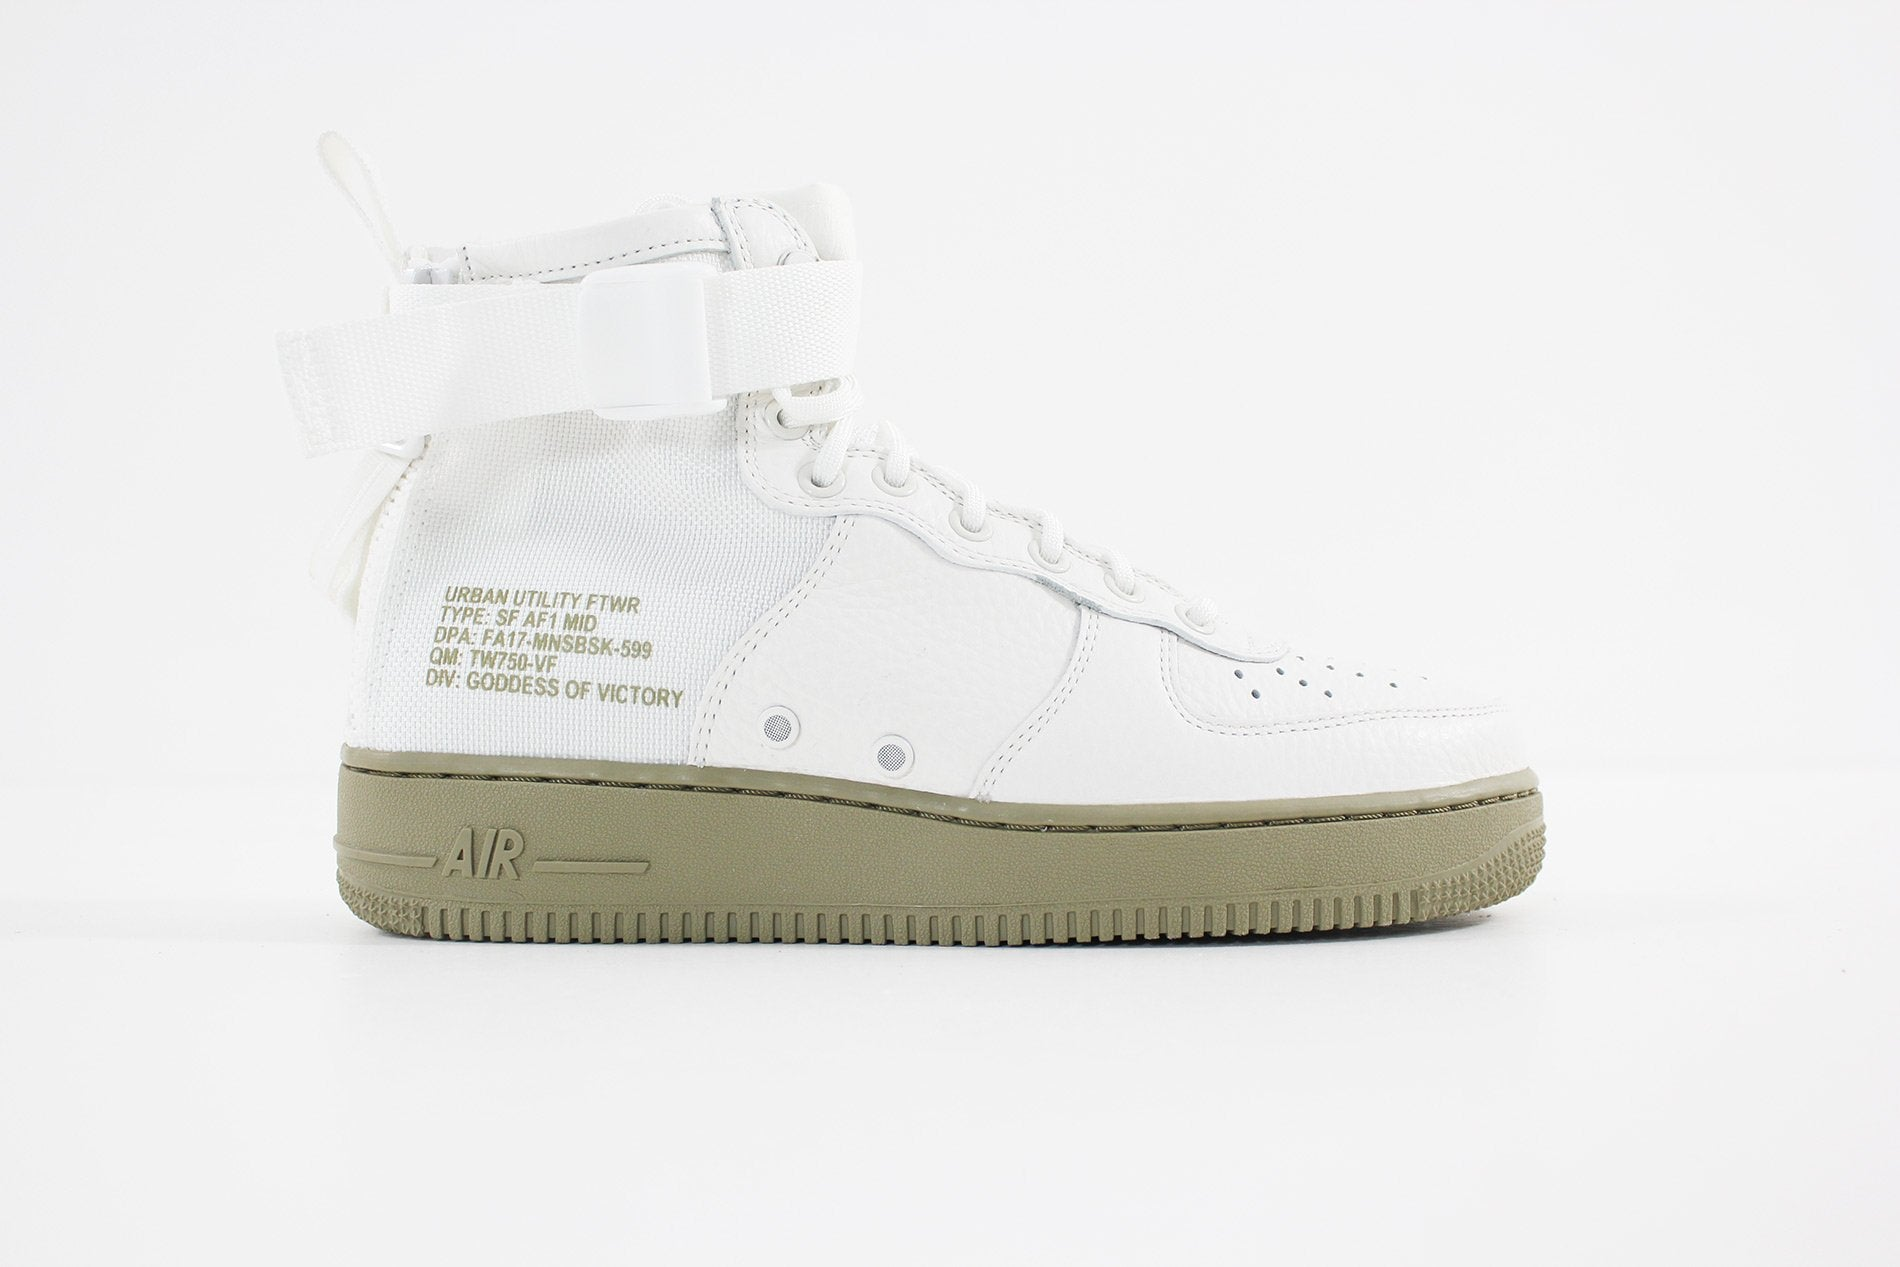 Nike Special Forces Air Force 1 Mens (USA 11) (UK 10) (EU 45